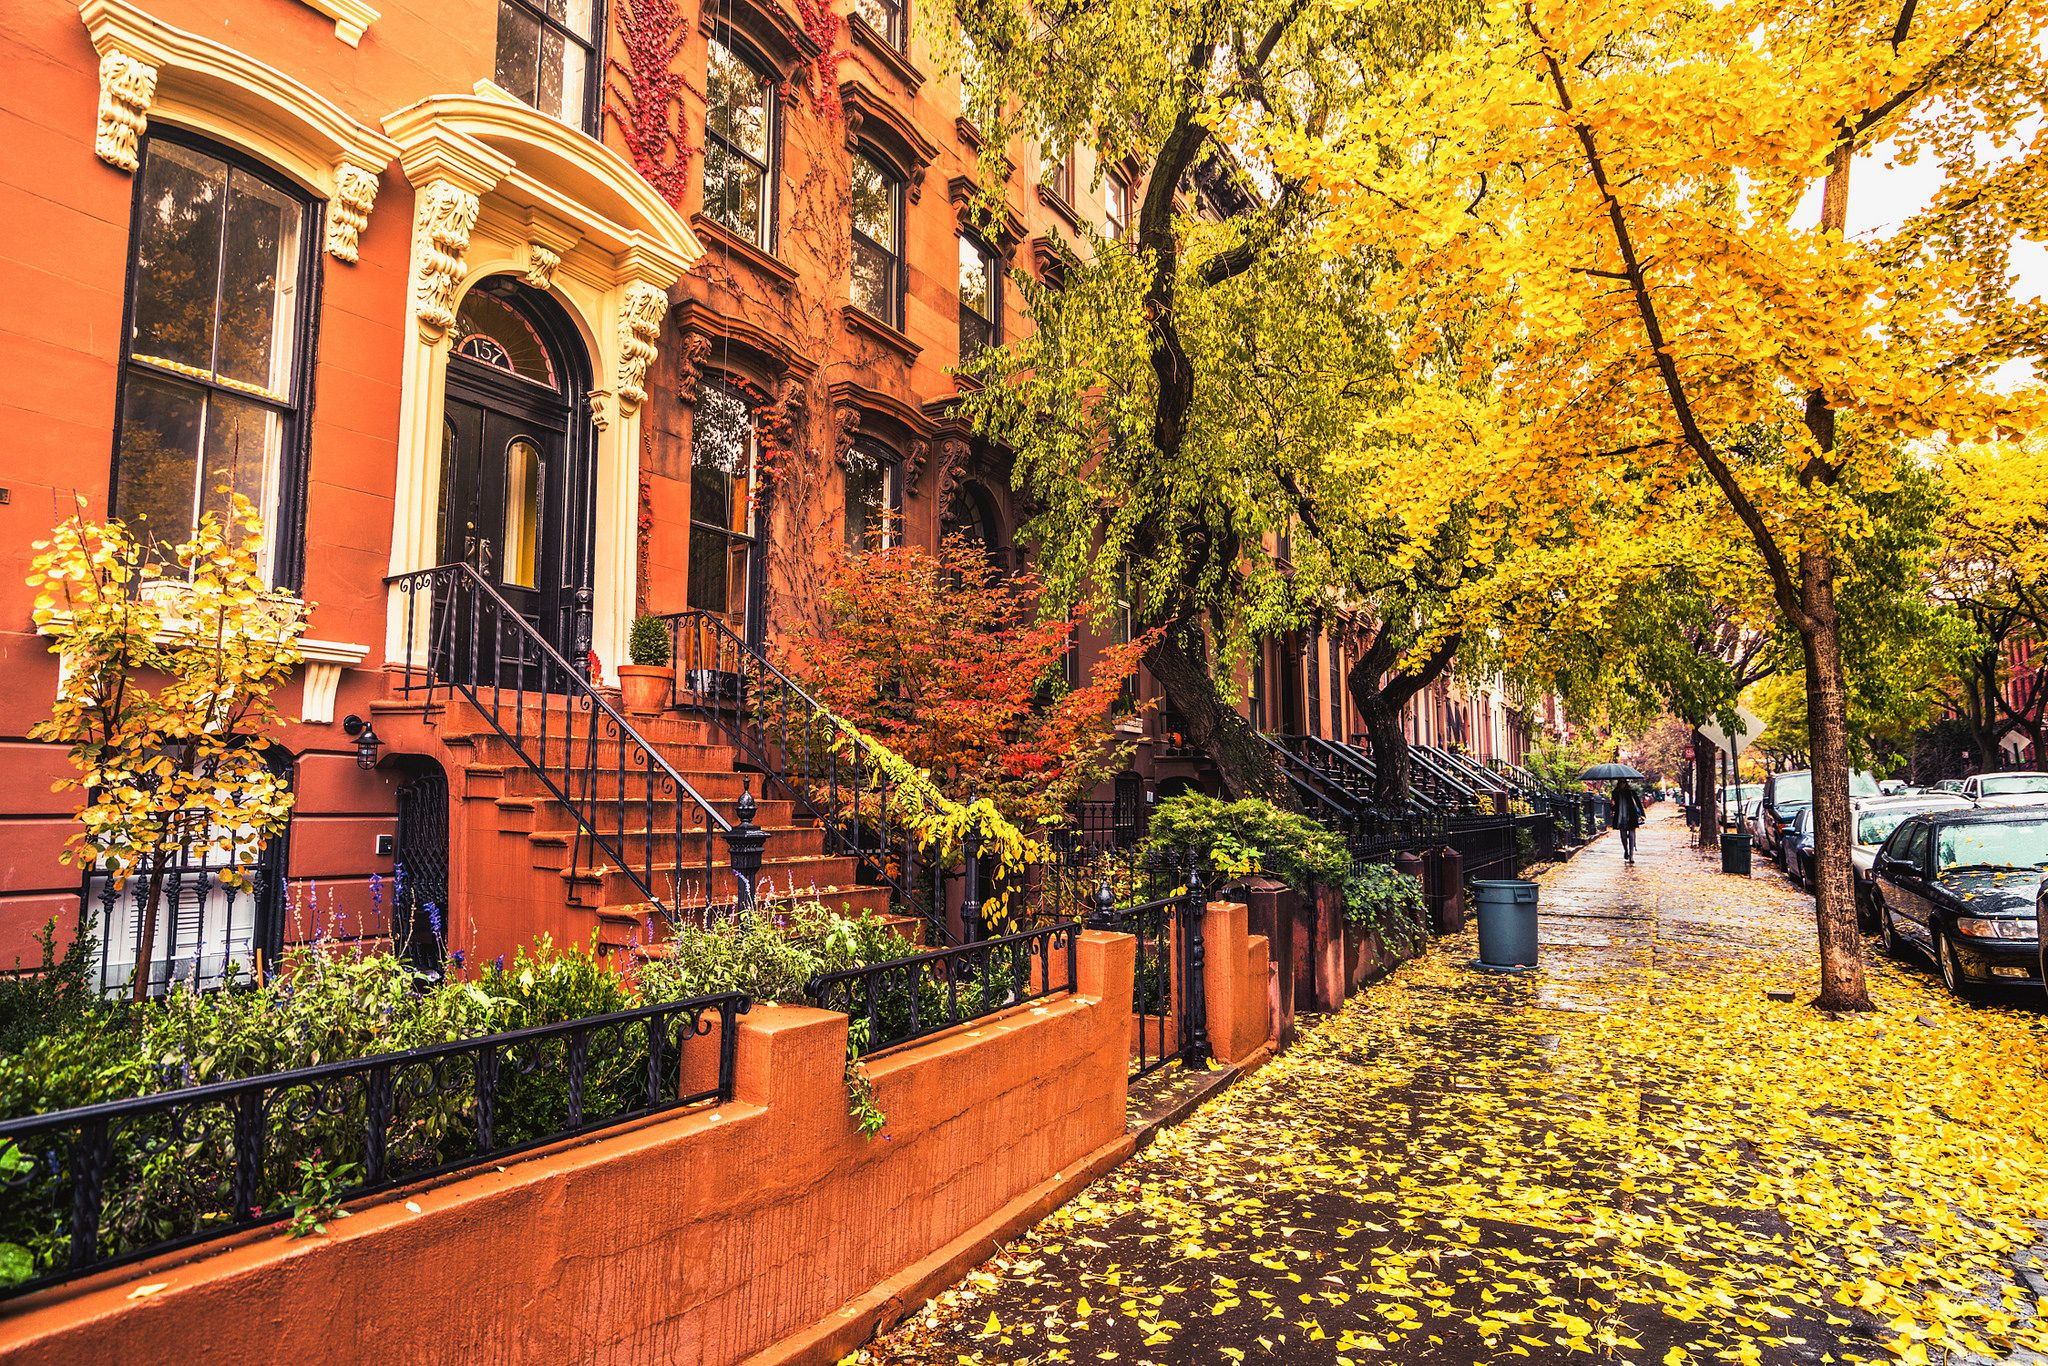 autumn in new york - photo #13